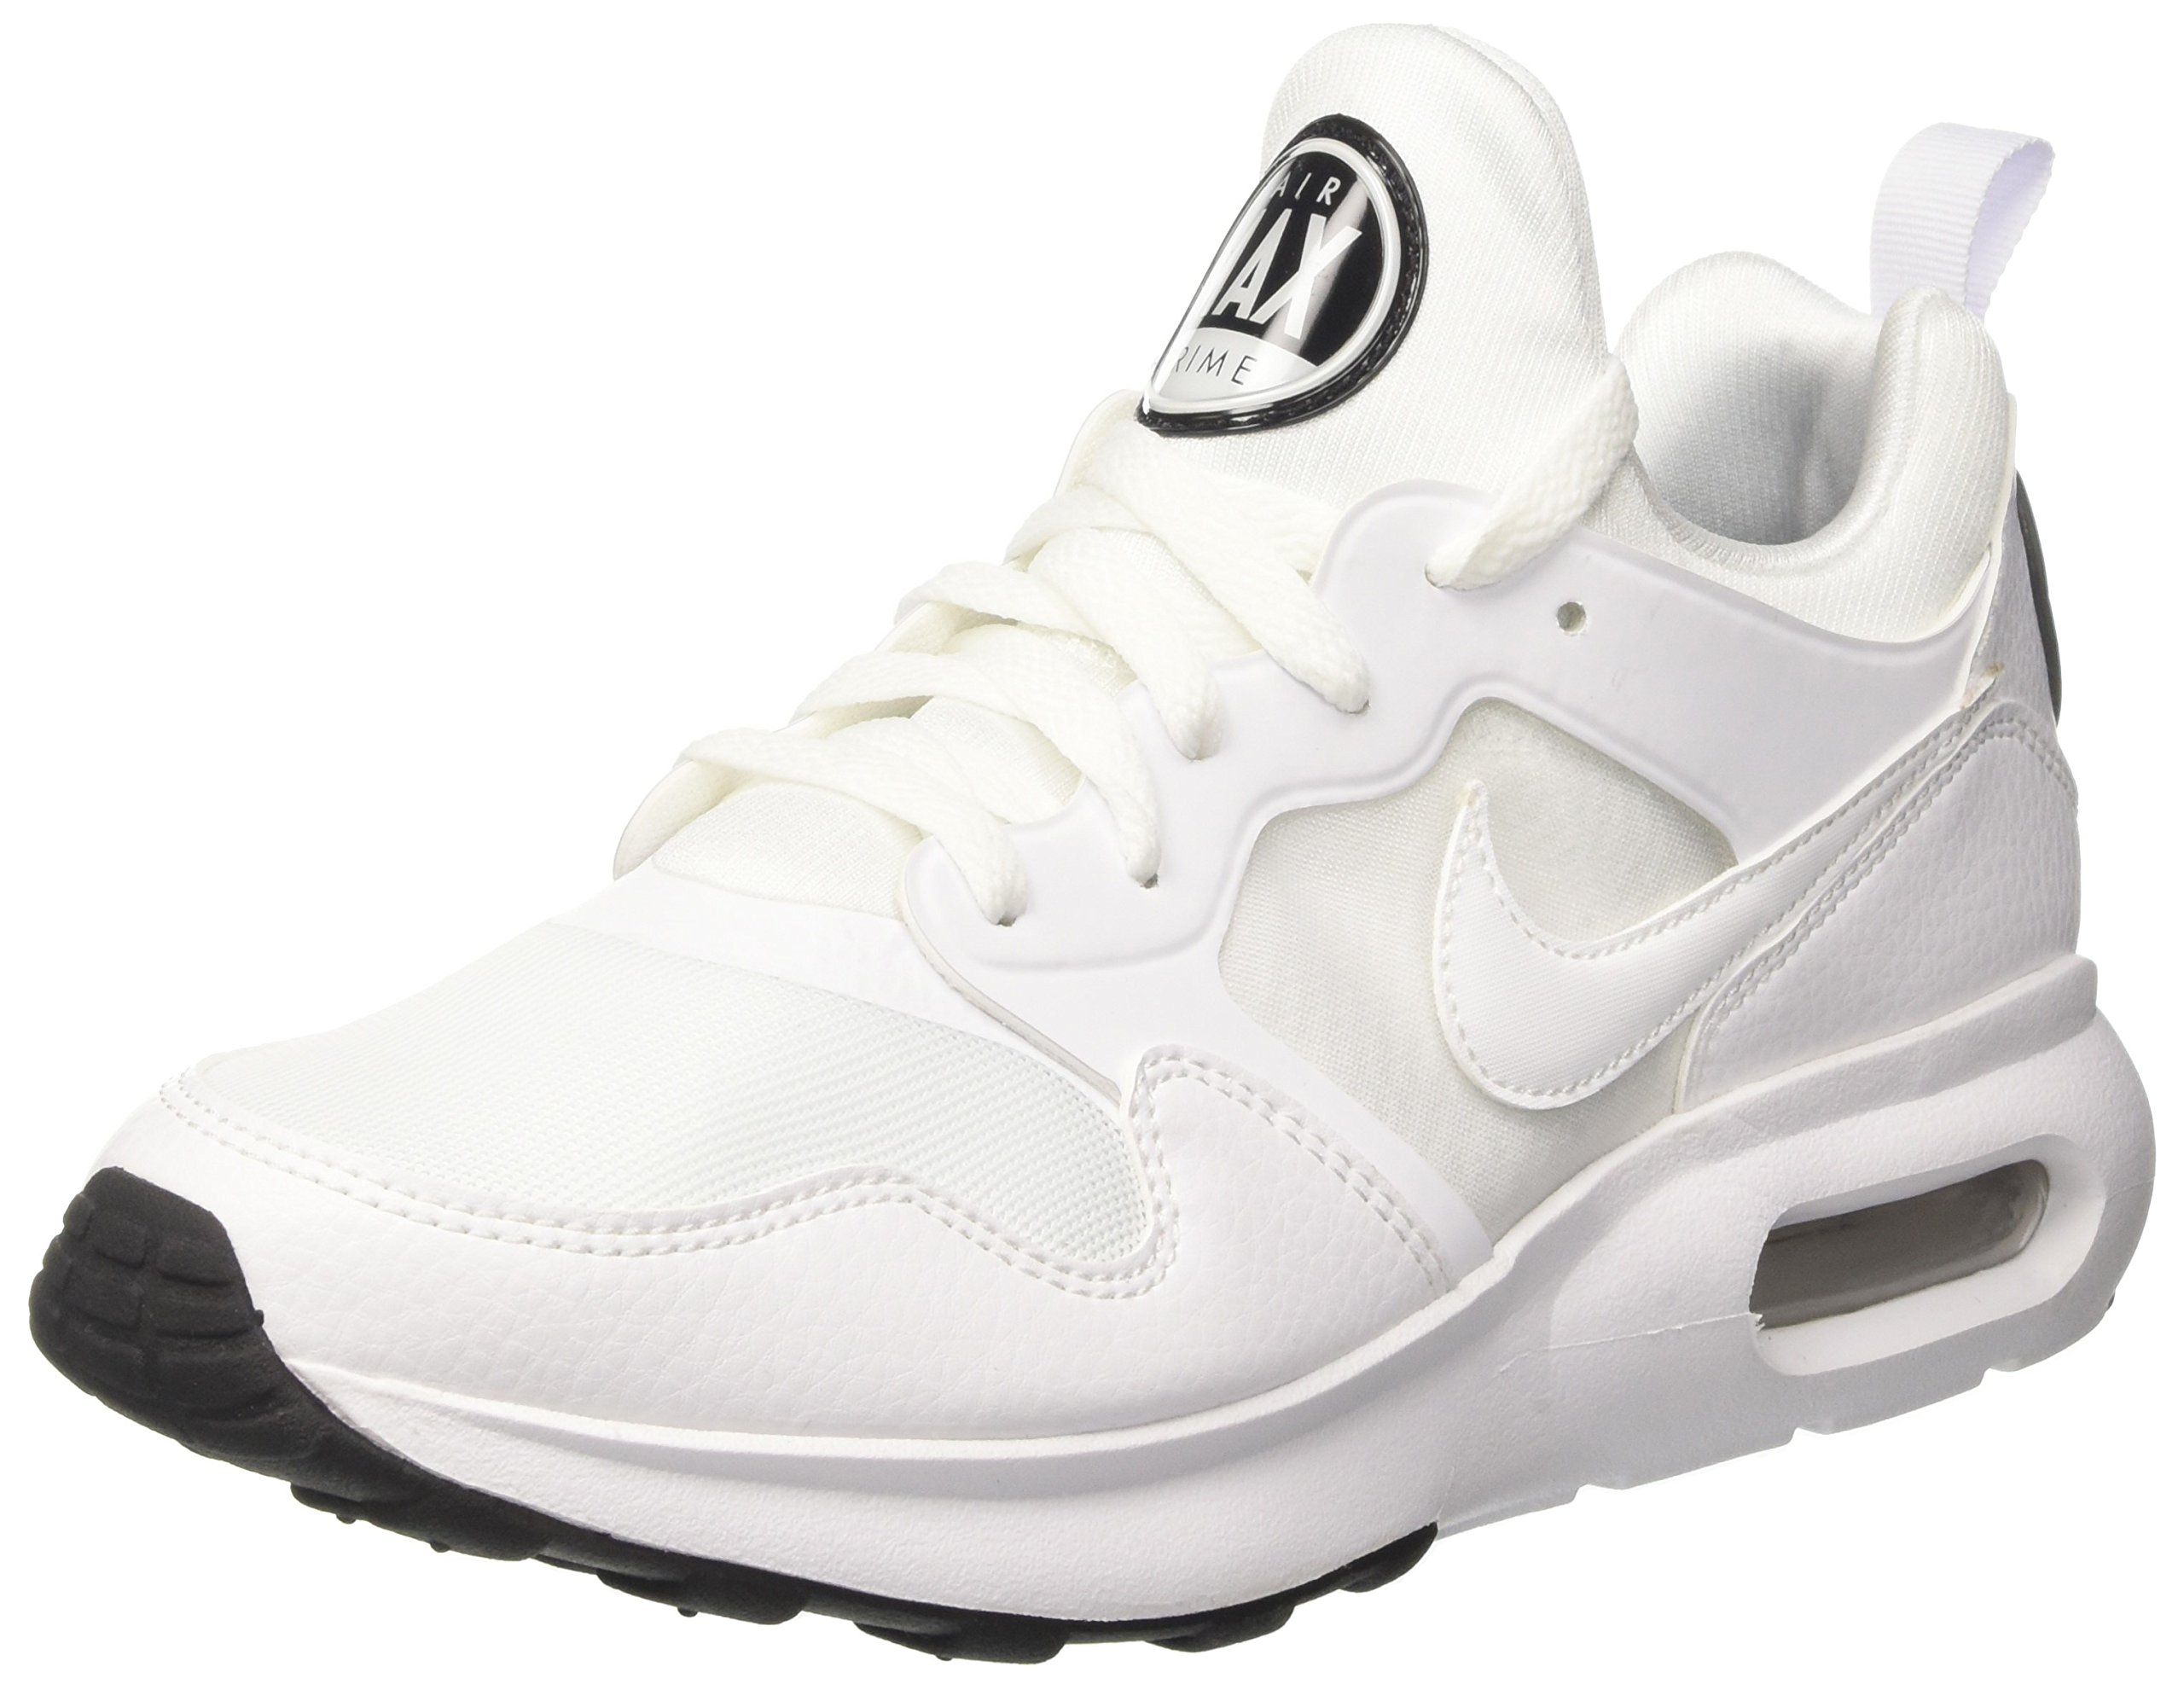 379fa6150bbfa Galleon - NIKE Men's Air Max Prime Running Shoe Athletic And Casual Sneaker  (11 D(M) US, White)